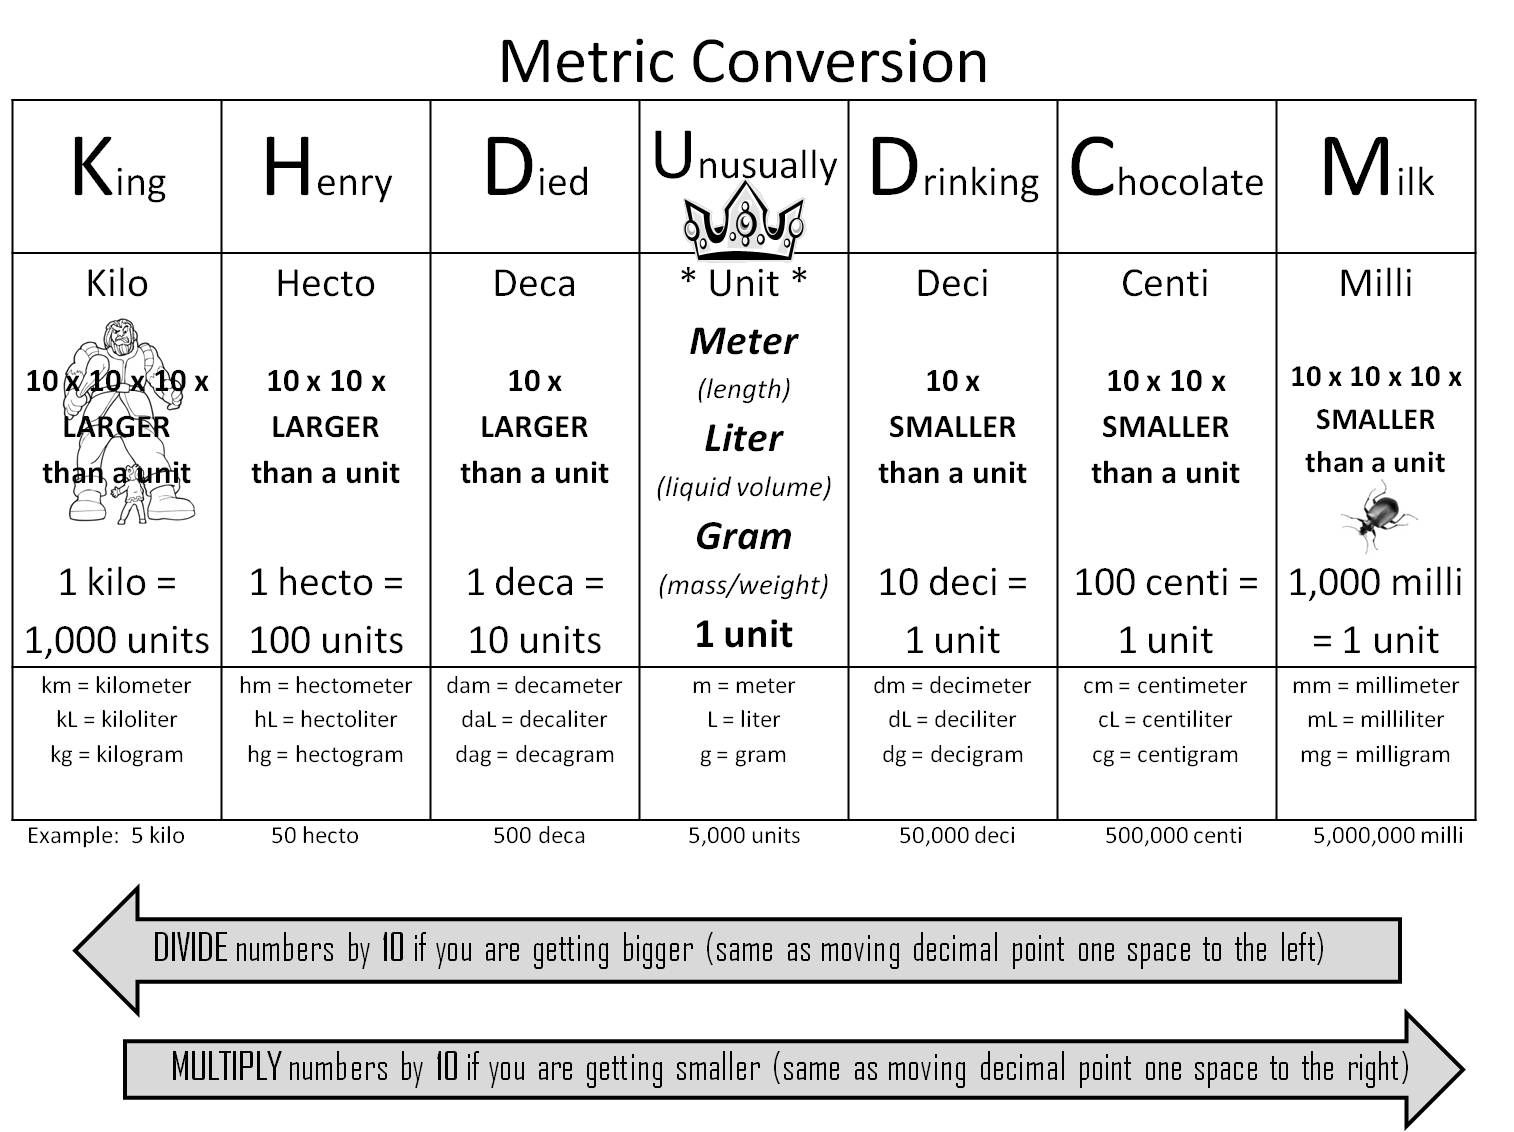 Strong Armor Math Metric Conversion Trick Math Conversions Nursing Math Grade 6 Math